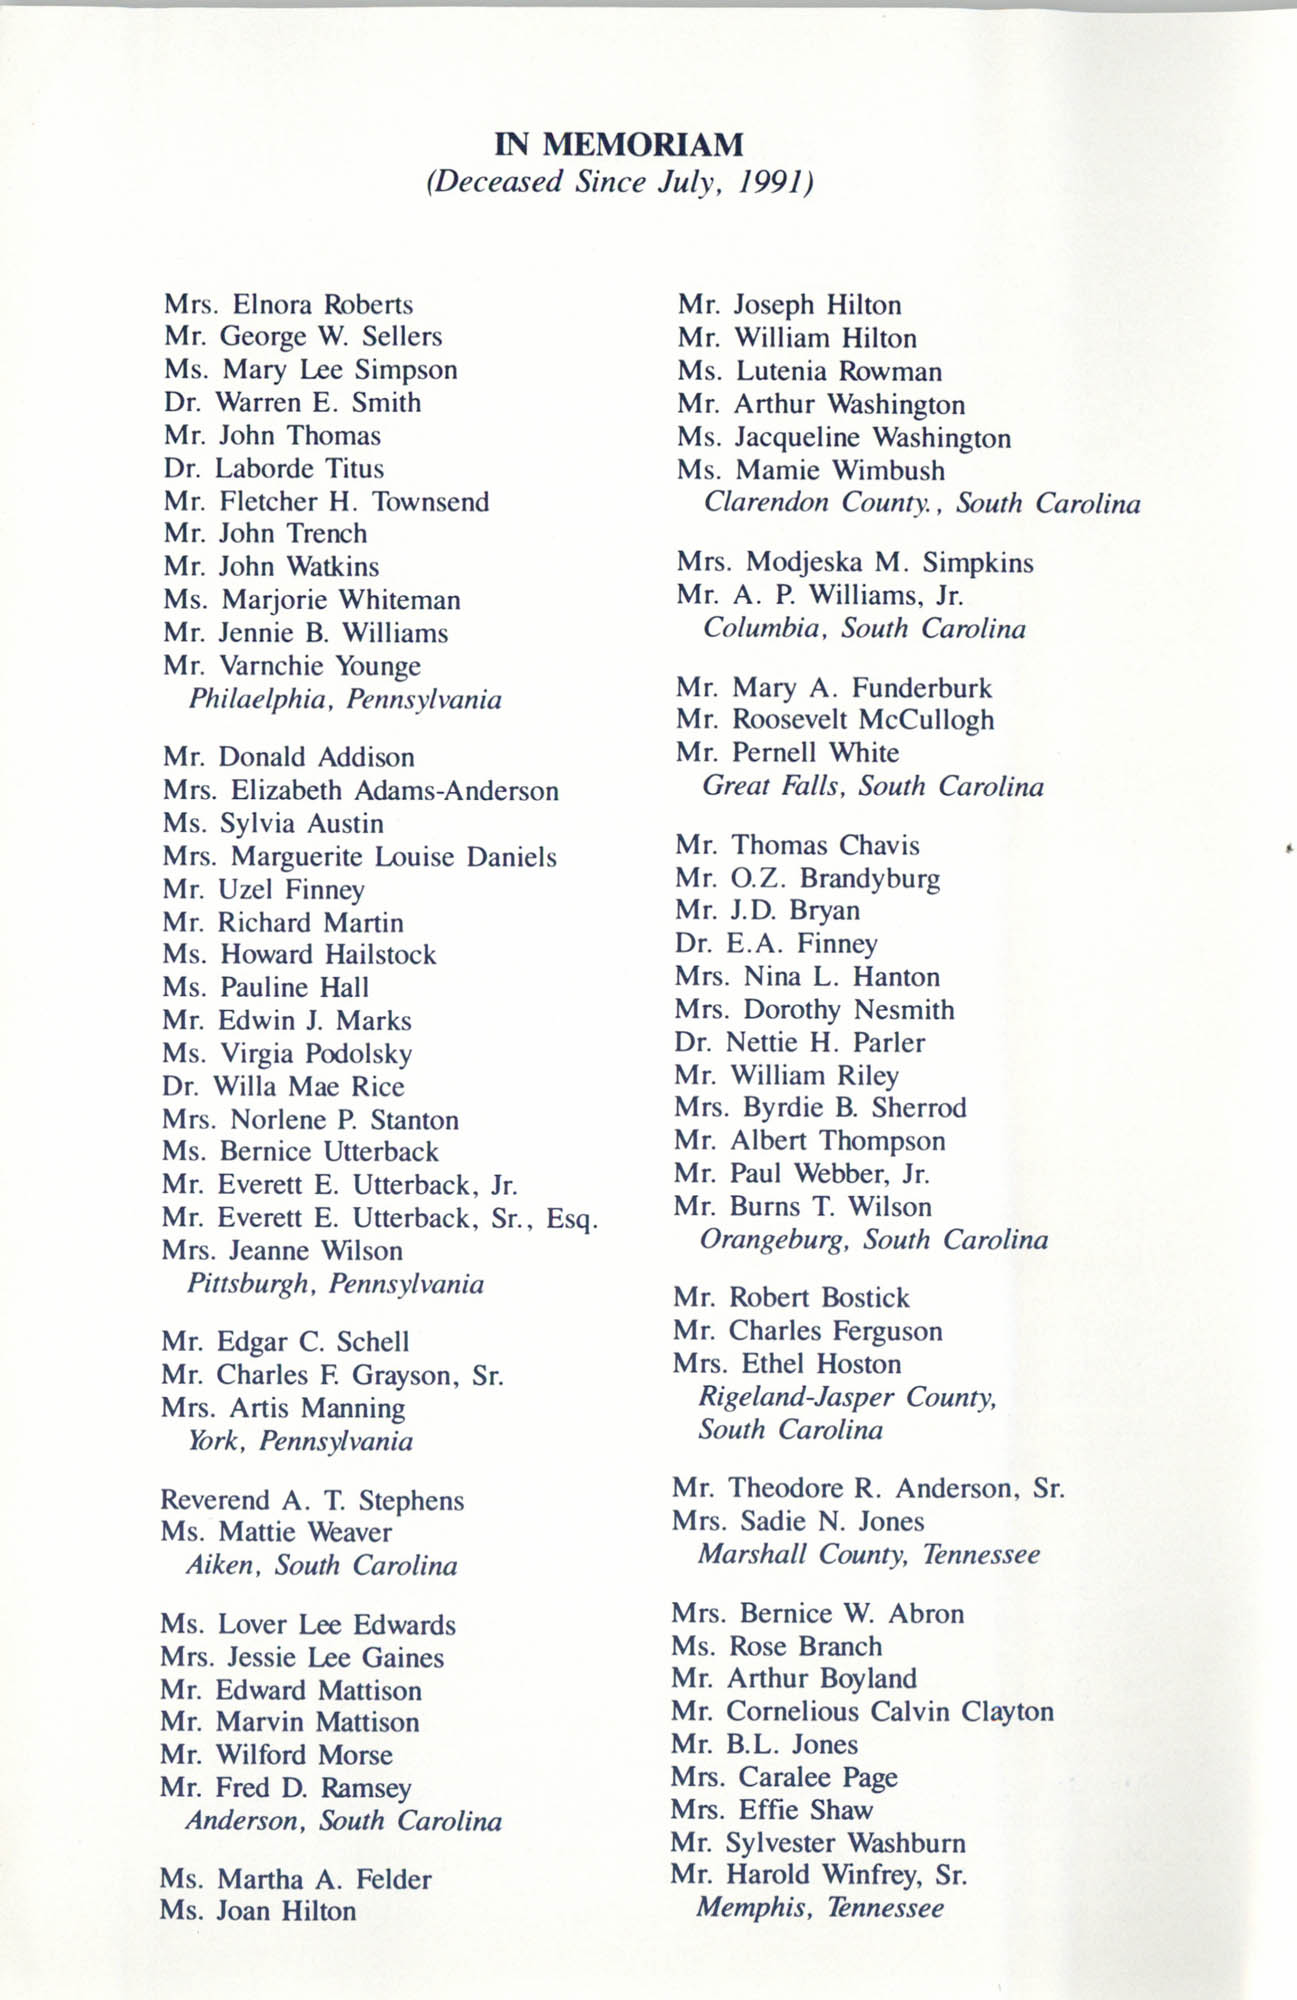 Memorial Service in Tribute to Deceased NAACP Officers and Member, July 12, 1992, Page 9